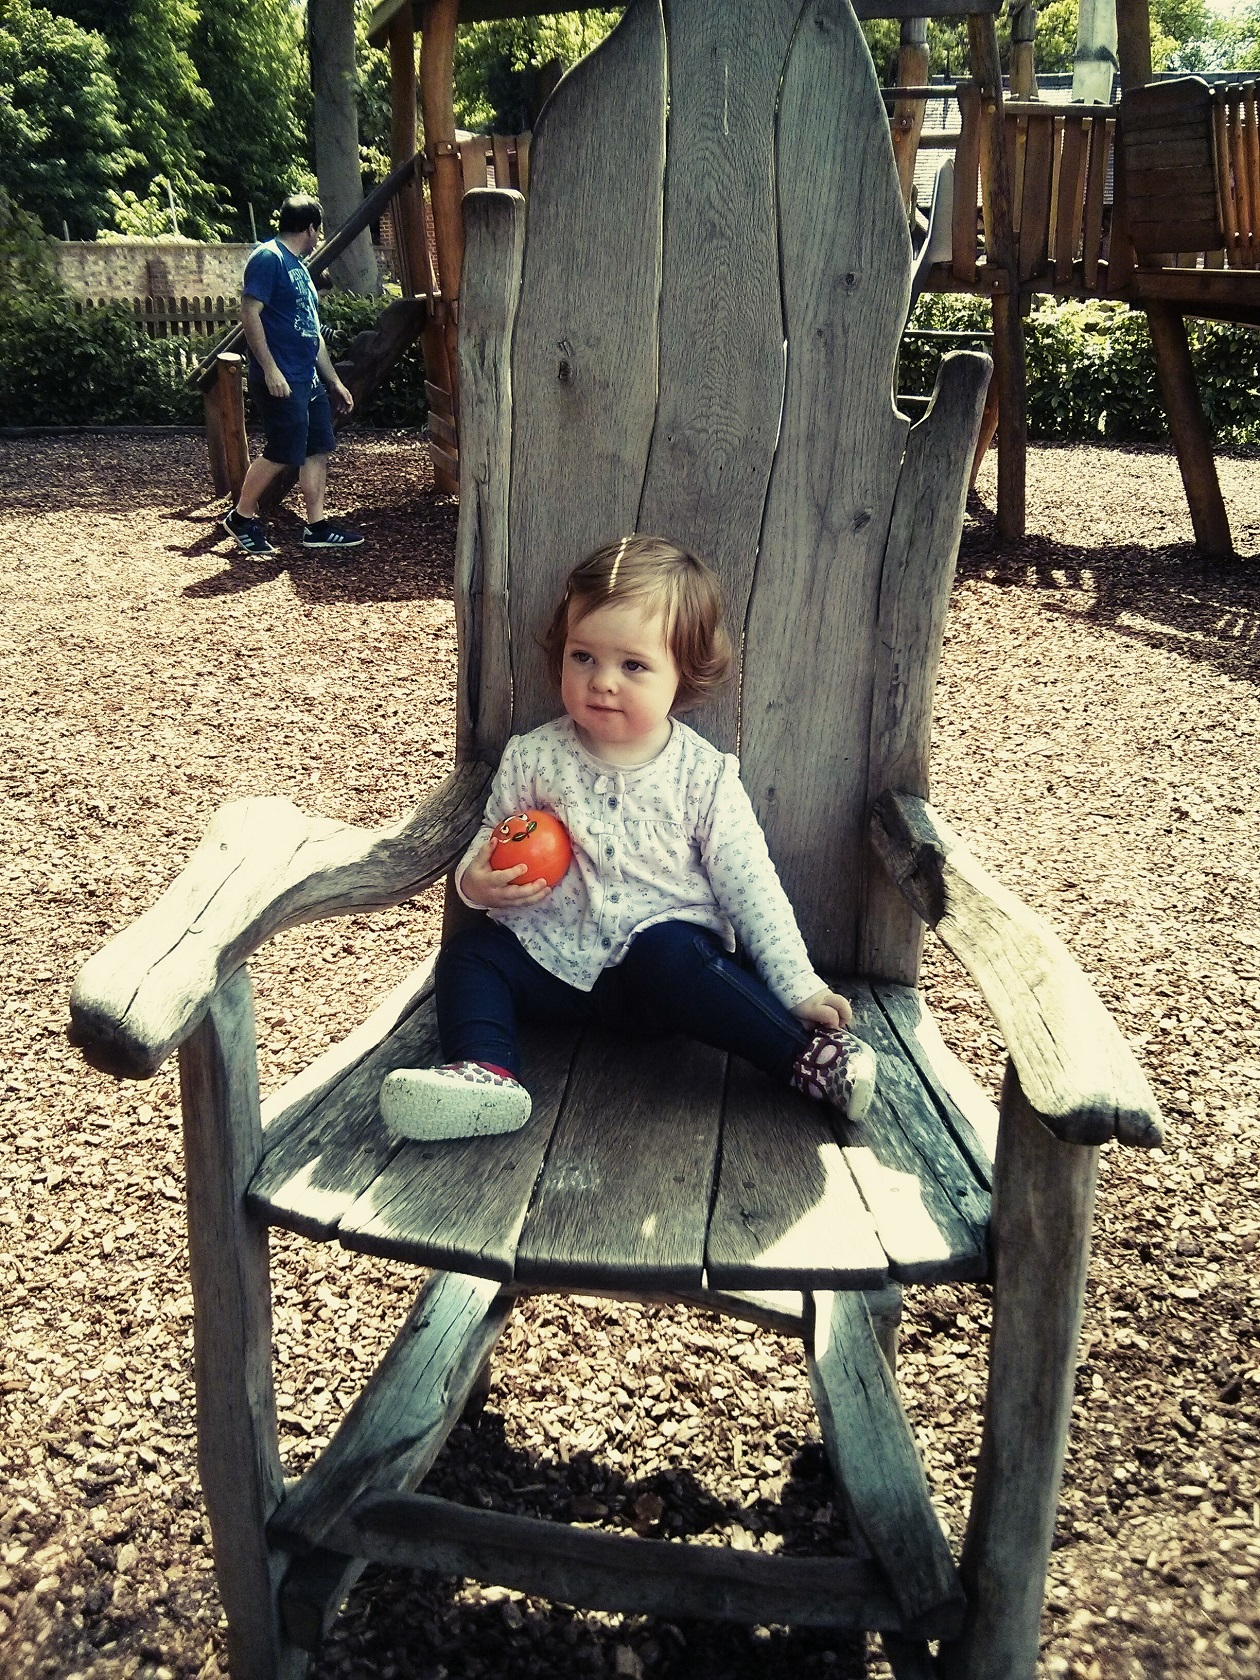 Small girl, big chair